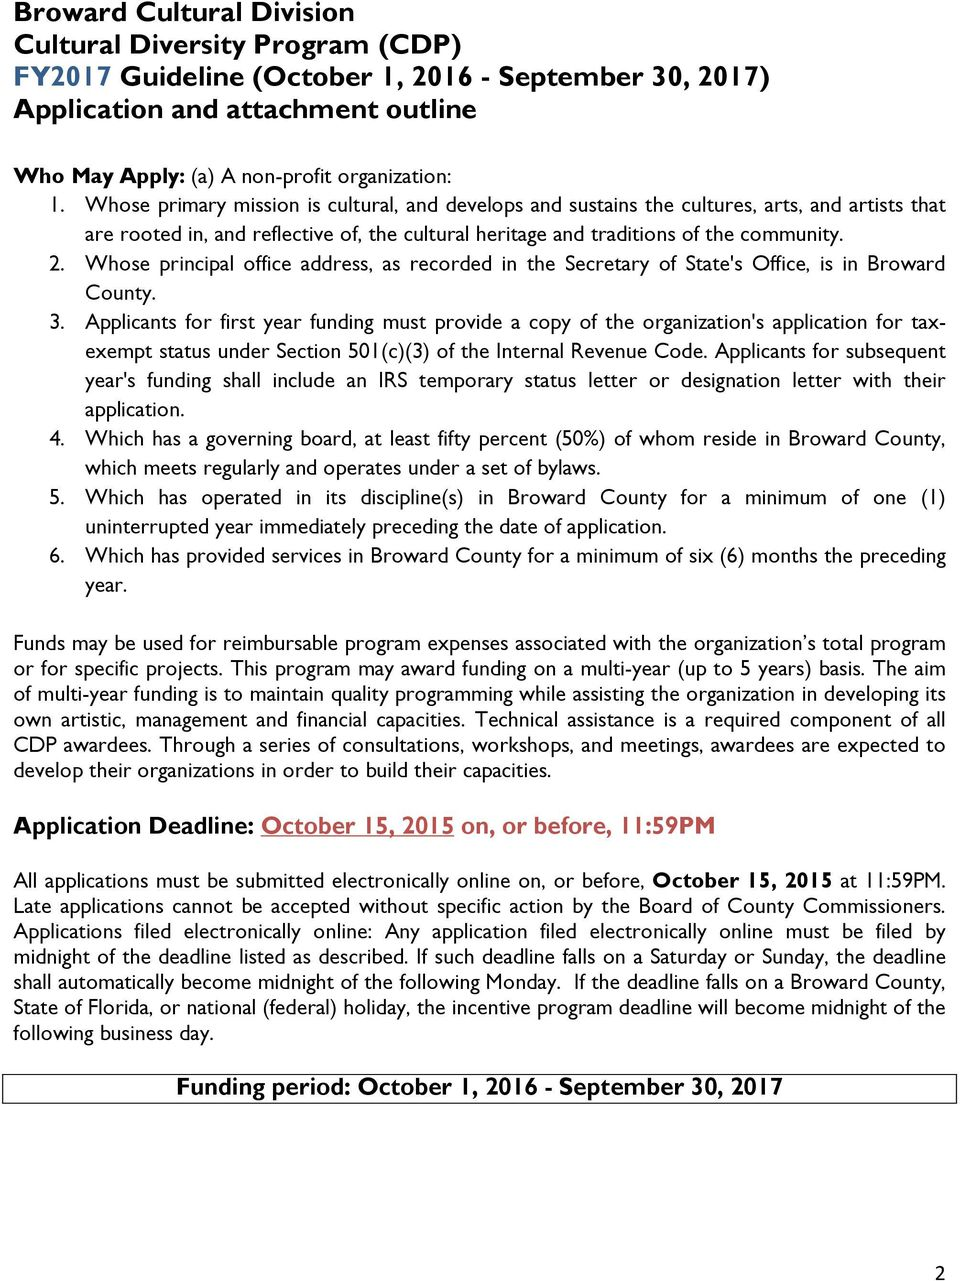 nbc page program application deadline 2017